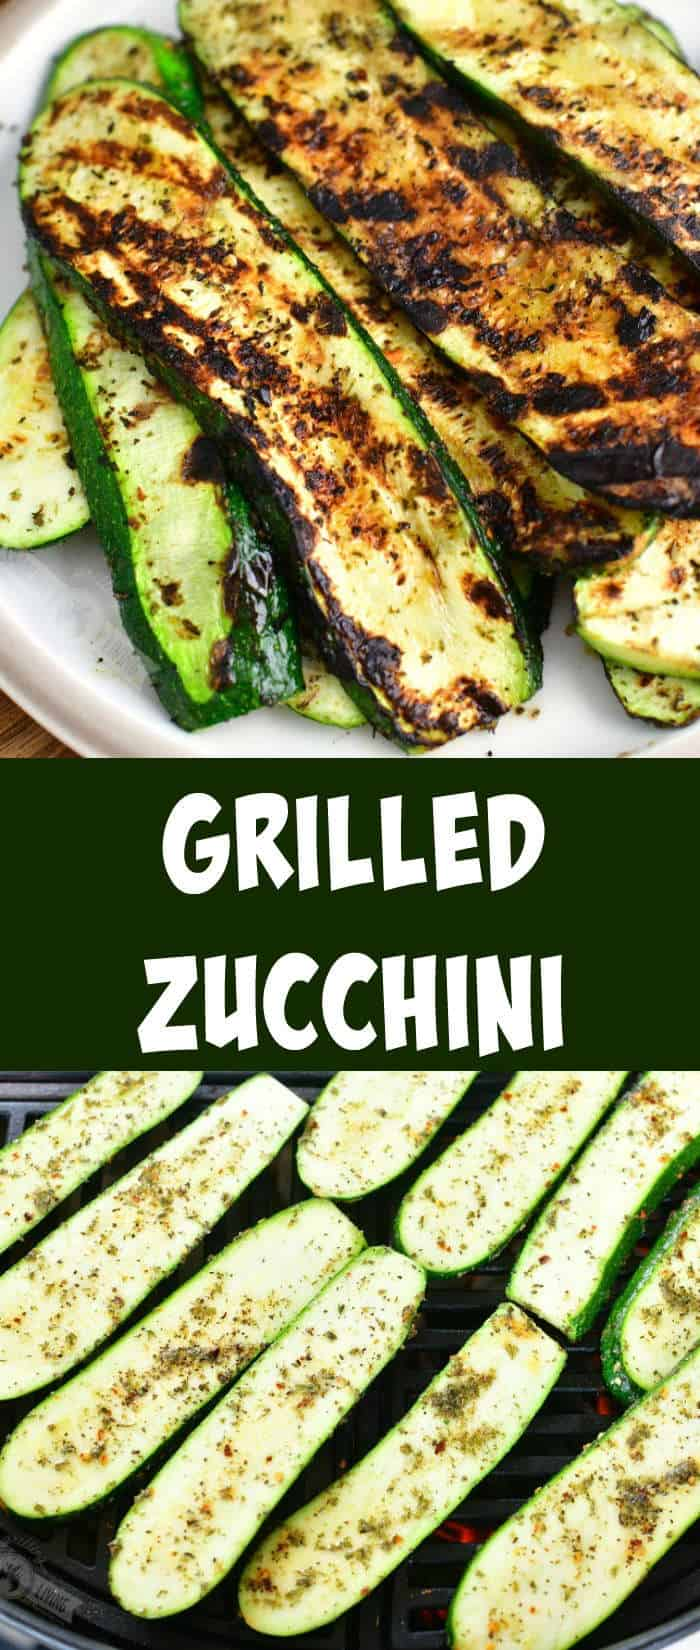 collage of two images: long grilled zucchini slices on a plate on top and uncooked zucchini slices on the grill on the bottom